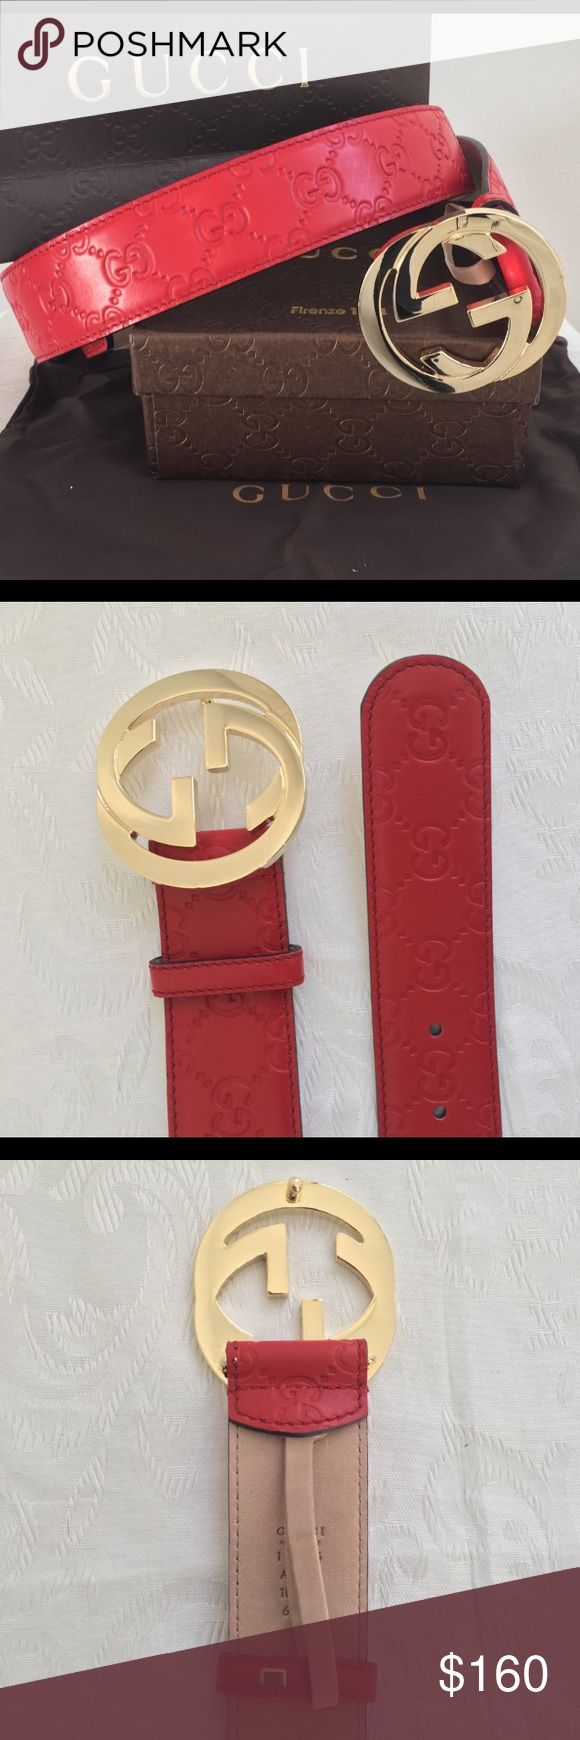 💥 Men's new Gucci belt NWT men's Gucci belt Comes with dust bag and box Great belt!  Brand new! Never worn!  No trades please! Gucci Accessories Belts